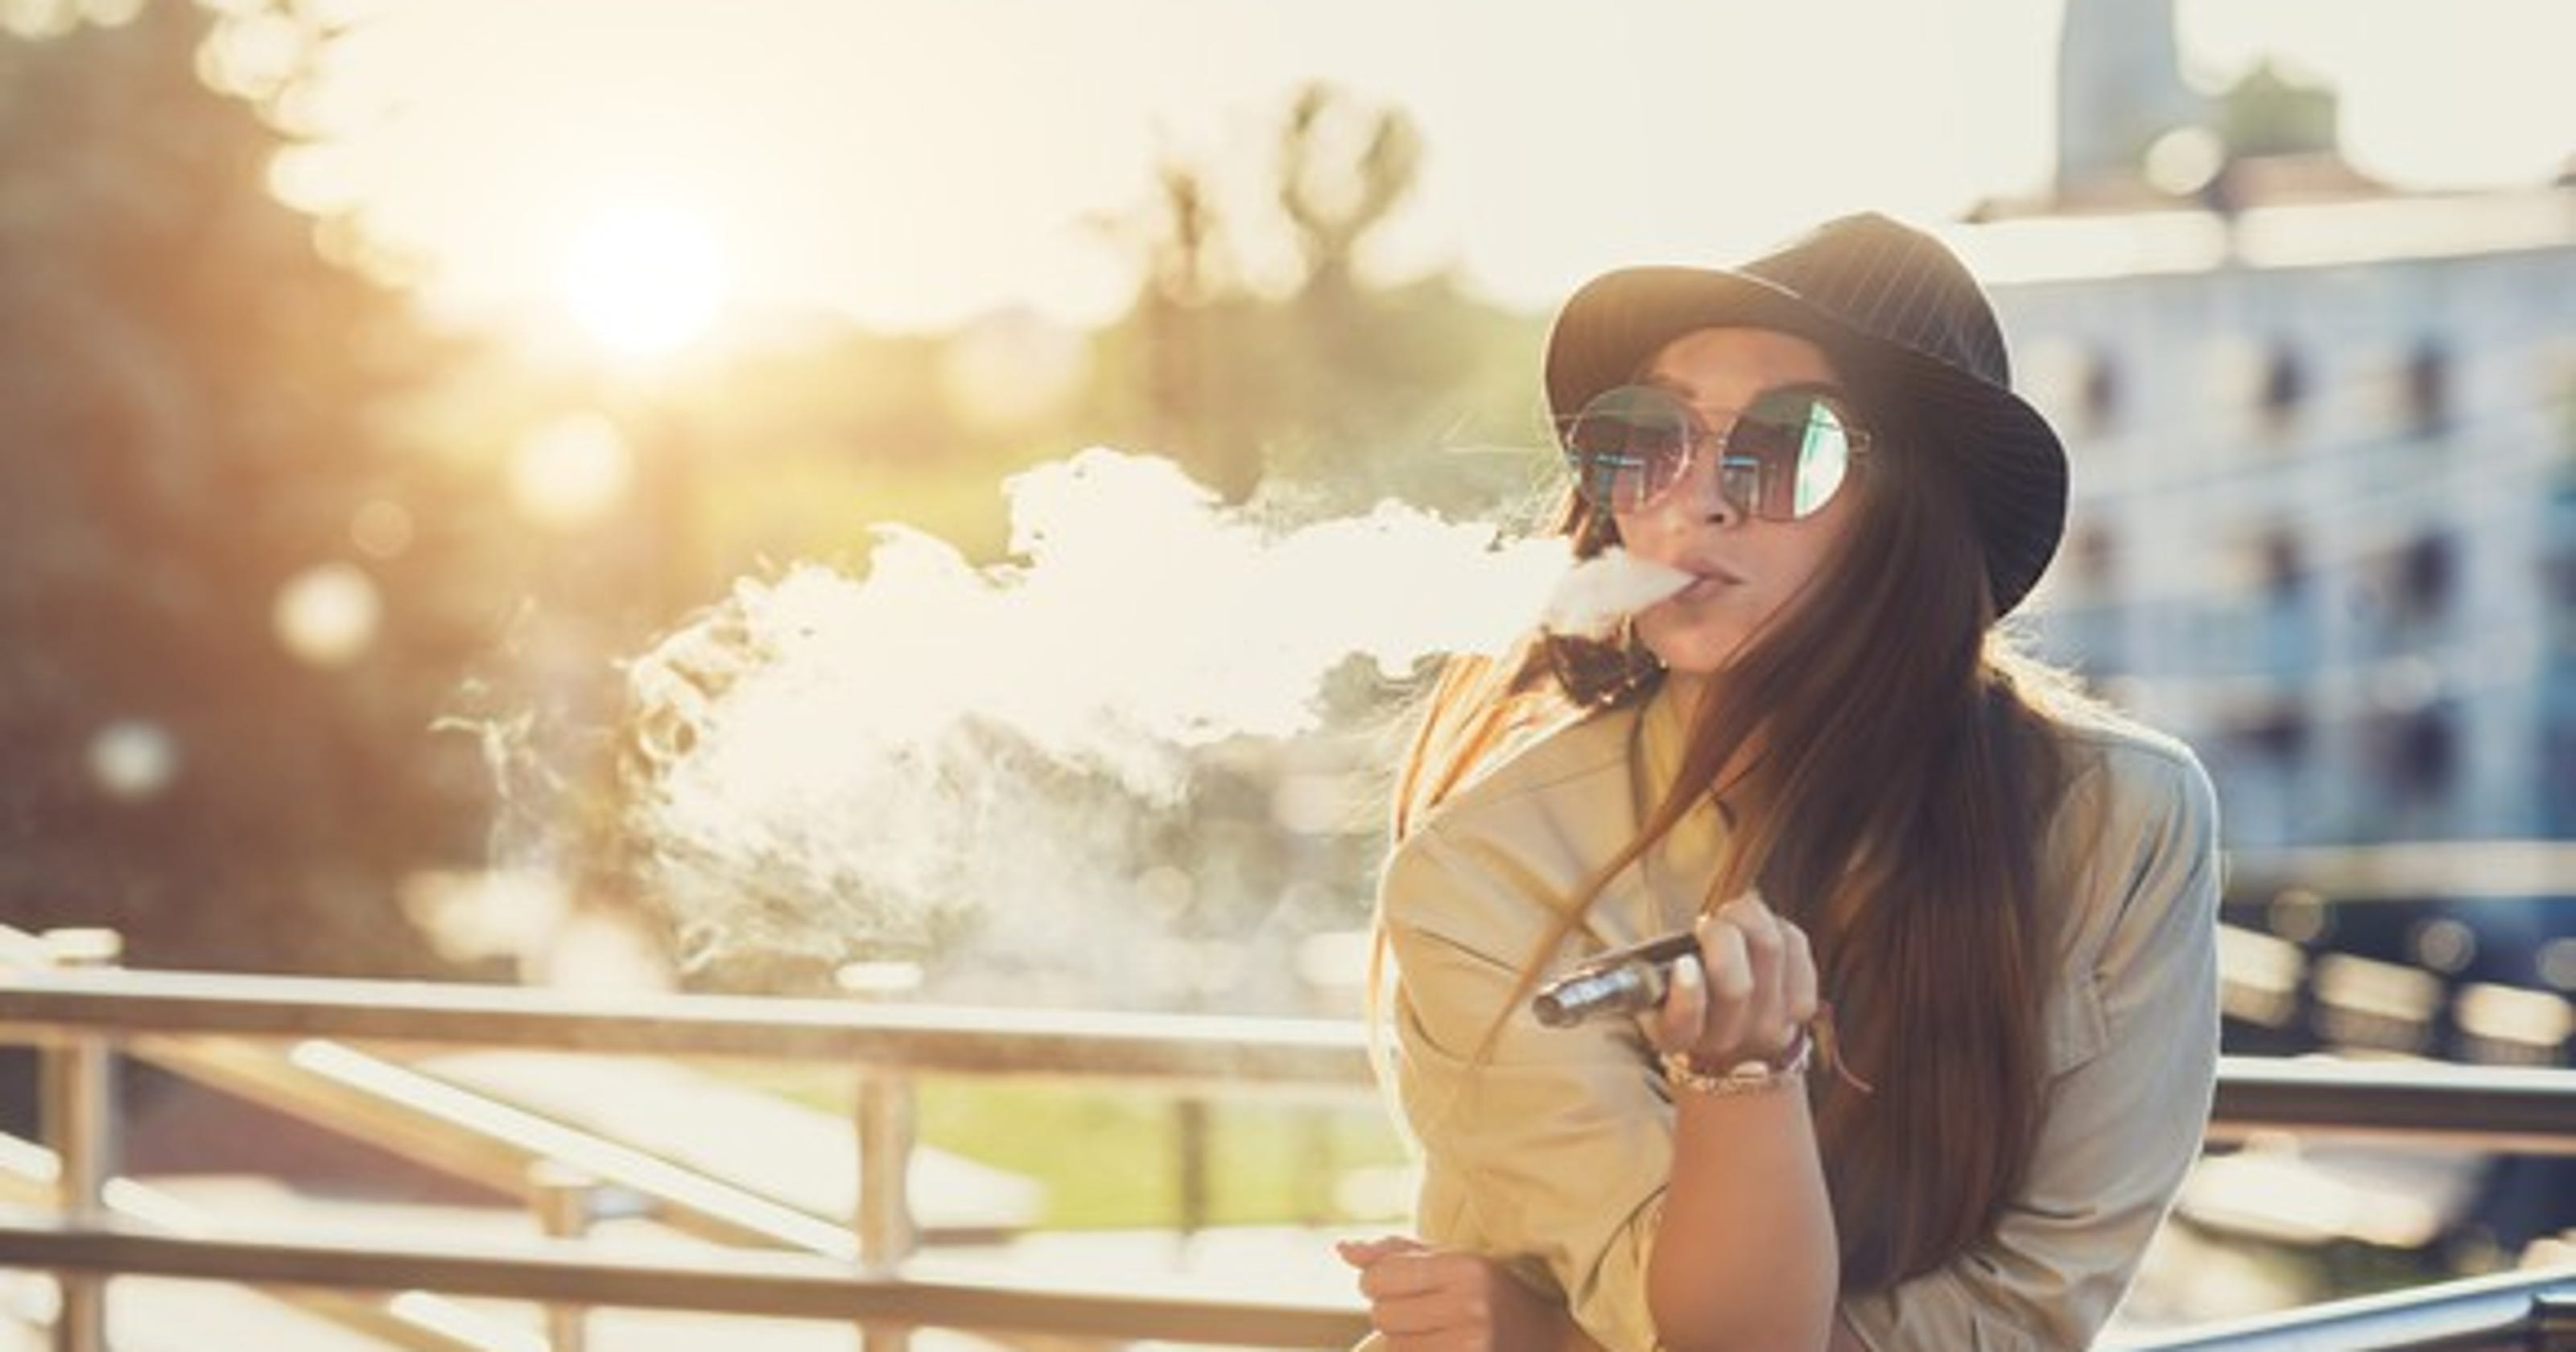 E Cigarettes Surgeon General Pushes Higher Prices Indoor Vaping Ban